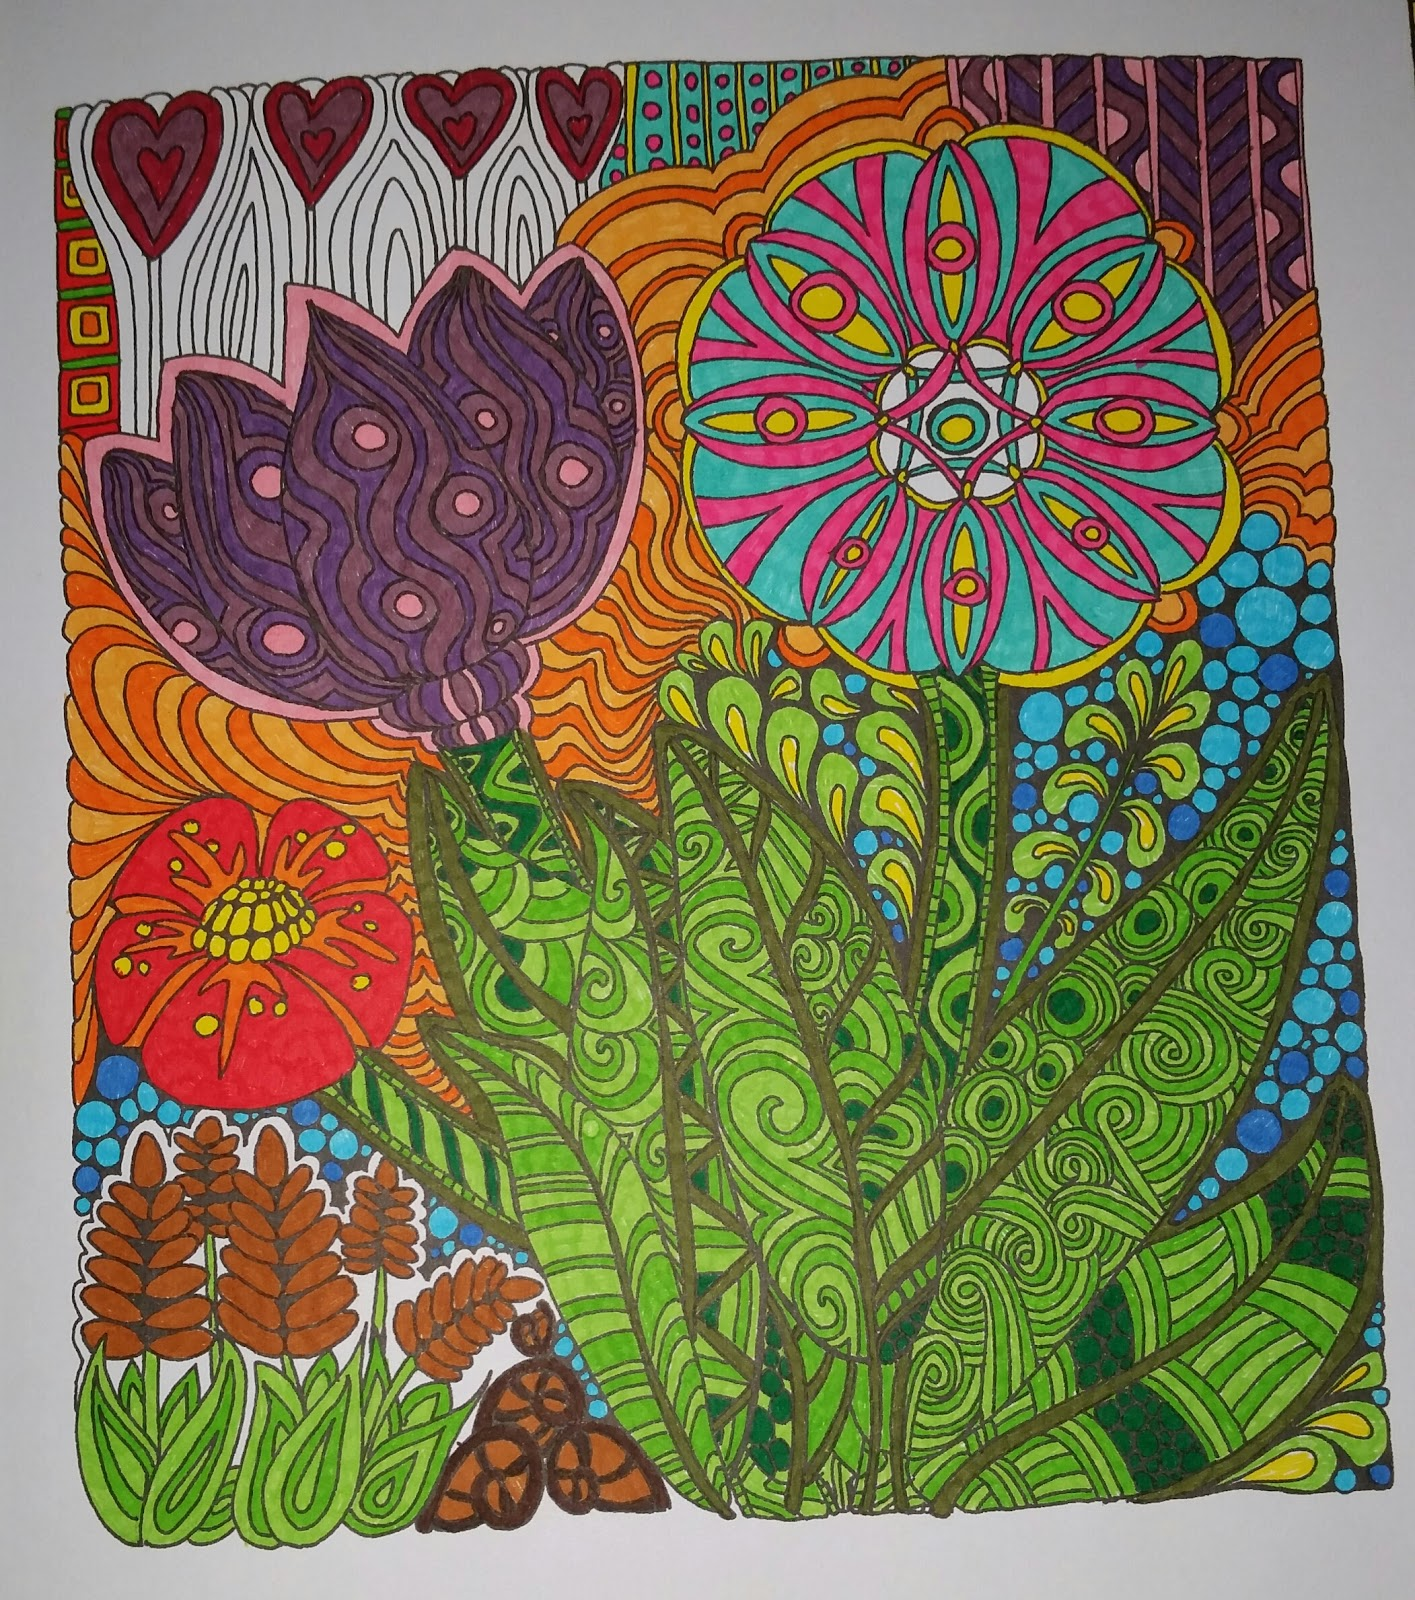 Color book for me - The Four Above Are From The Book Color Me Happy 100 Coloring Templates That Will Make You Smile A Zen Coloring Book